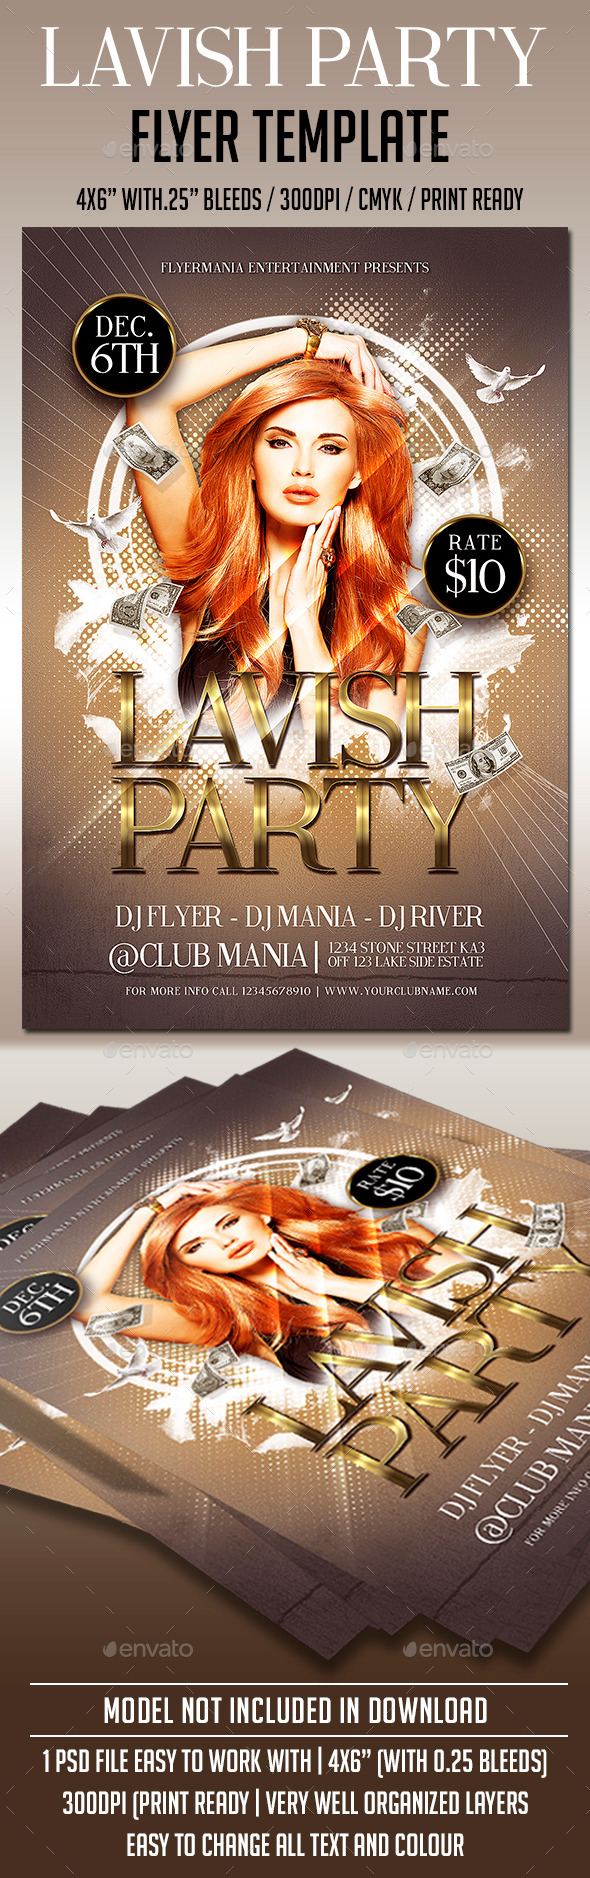 Lavish Party Flyer Template - Clubs & Parties Events